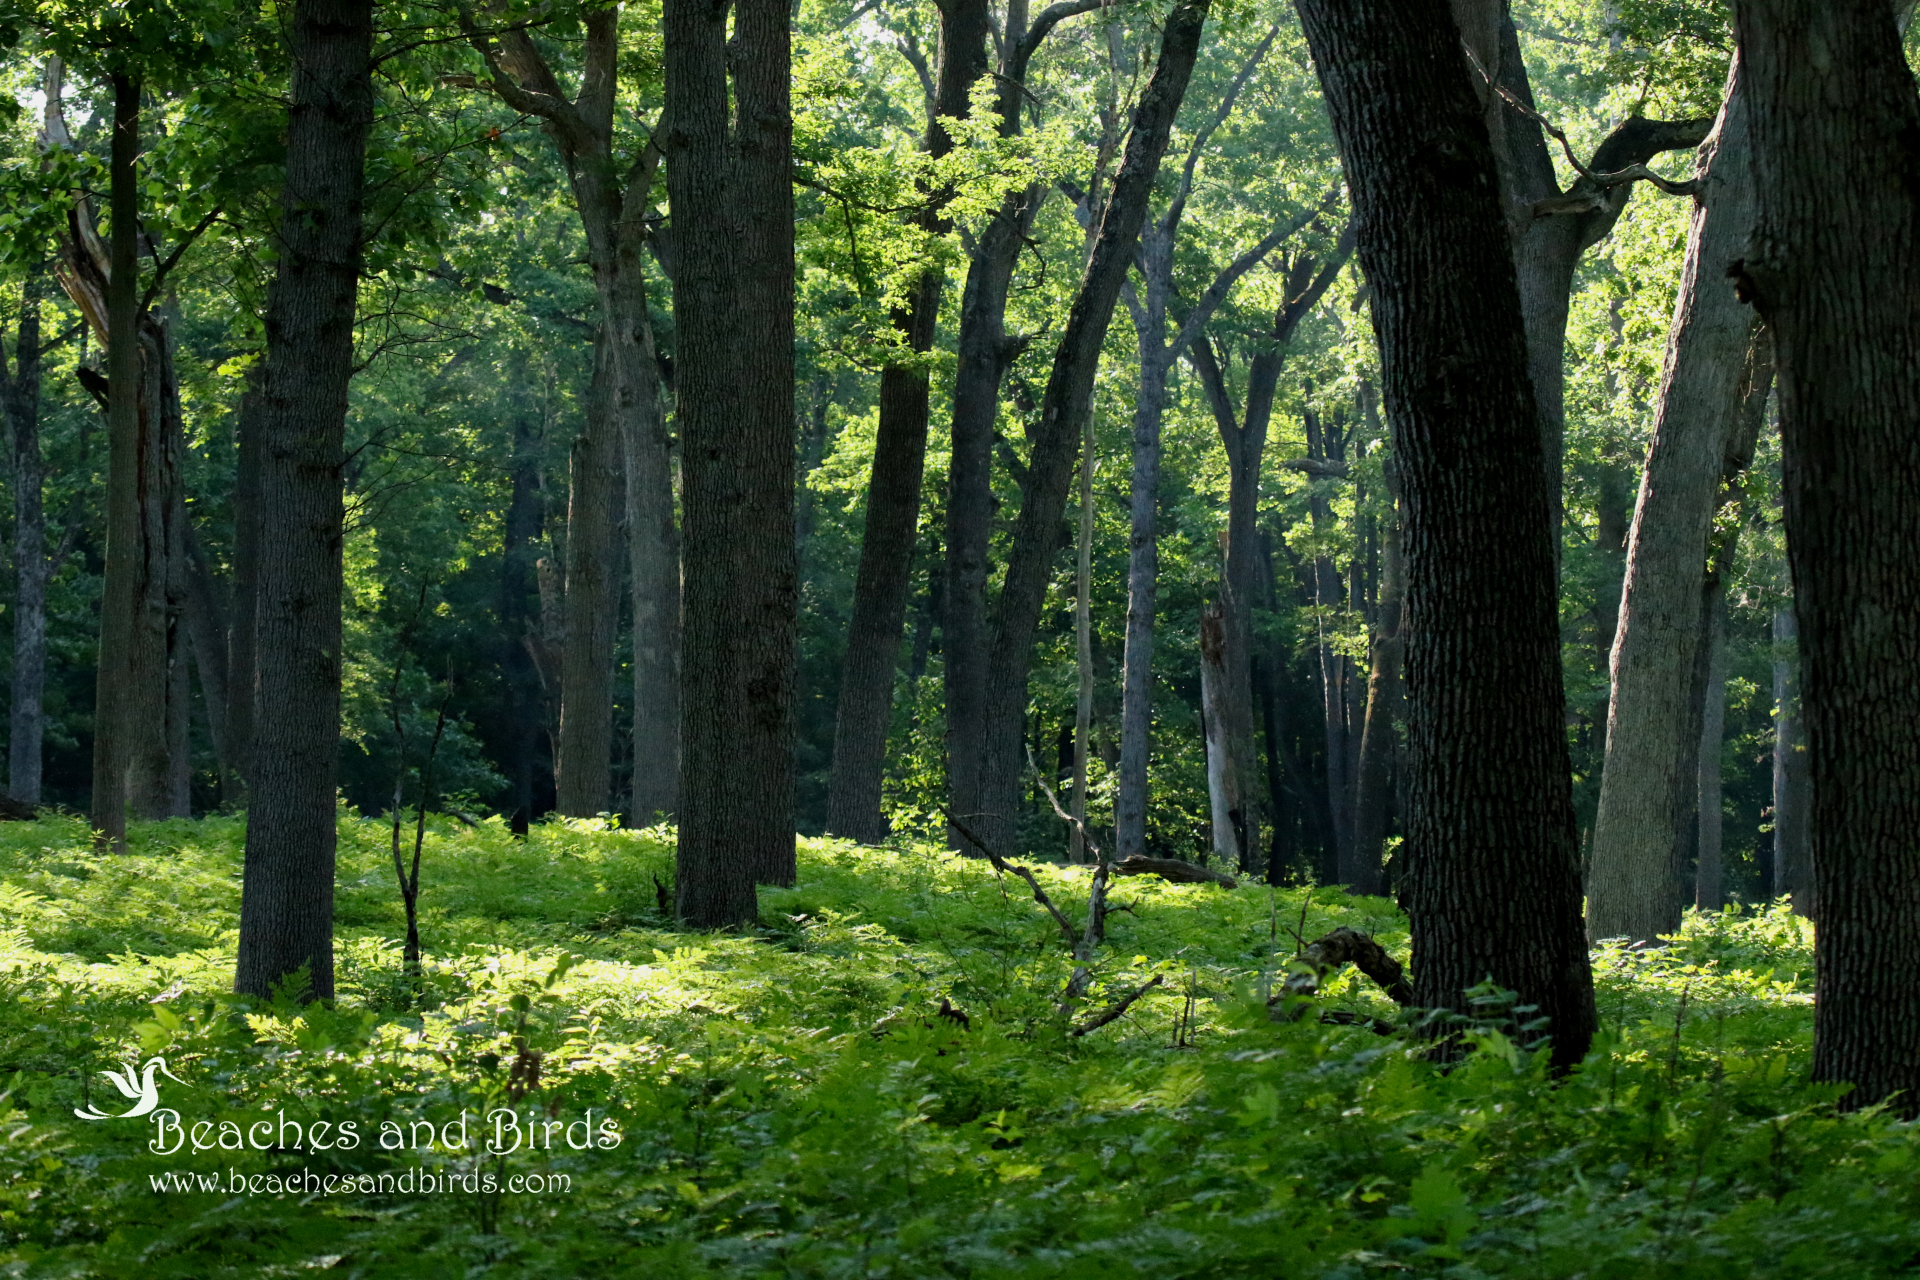 Oak Openings is unlike any other habitat in Ohio